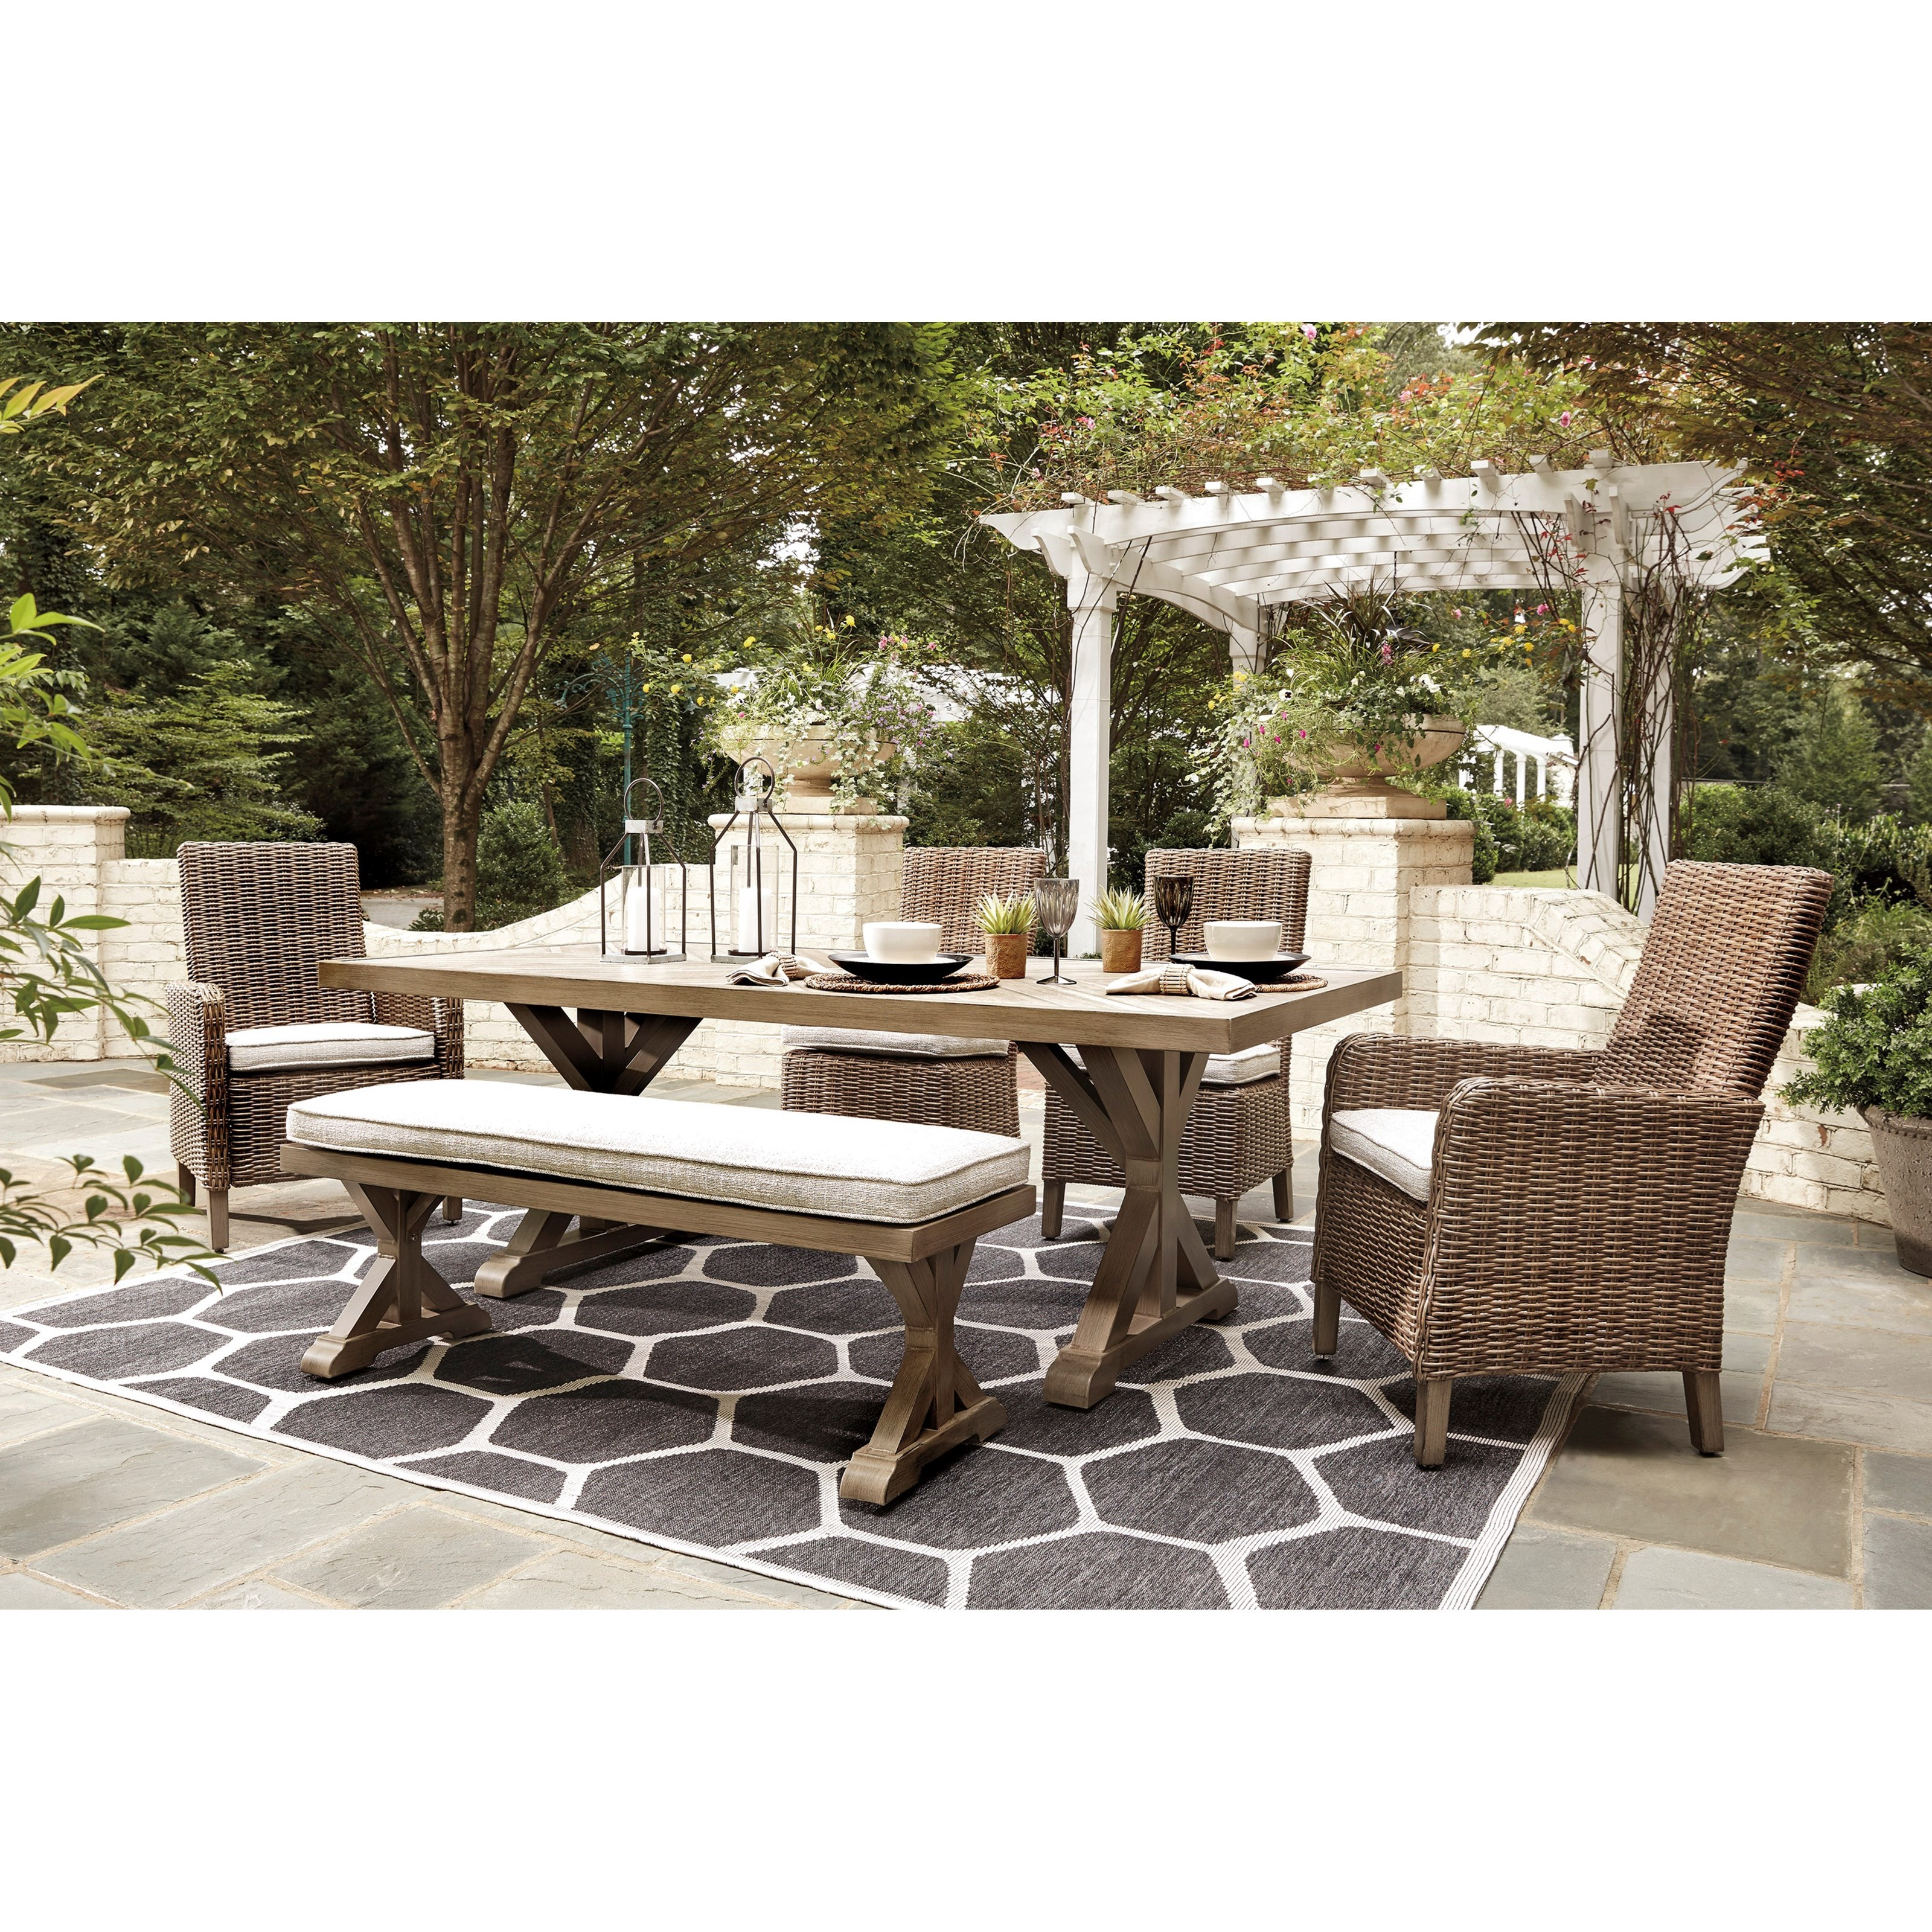 Beachcroft 6 Piece Outdoor Dining Set by Signature Design by Ashley at Household Furniture